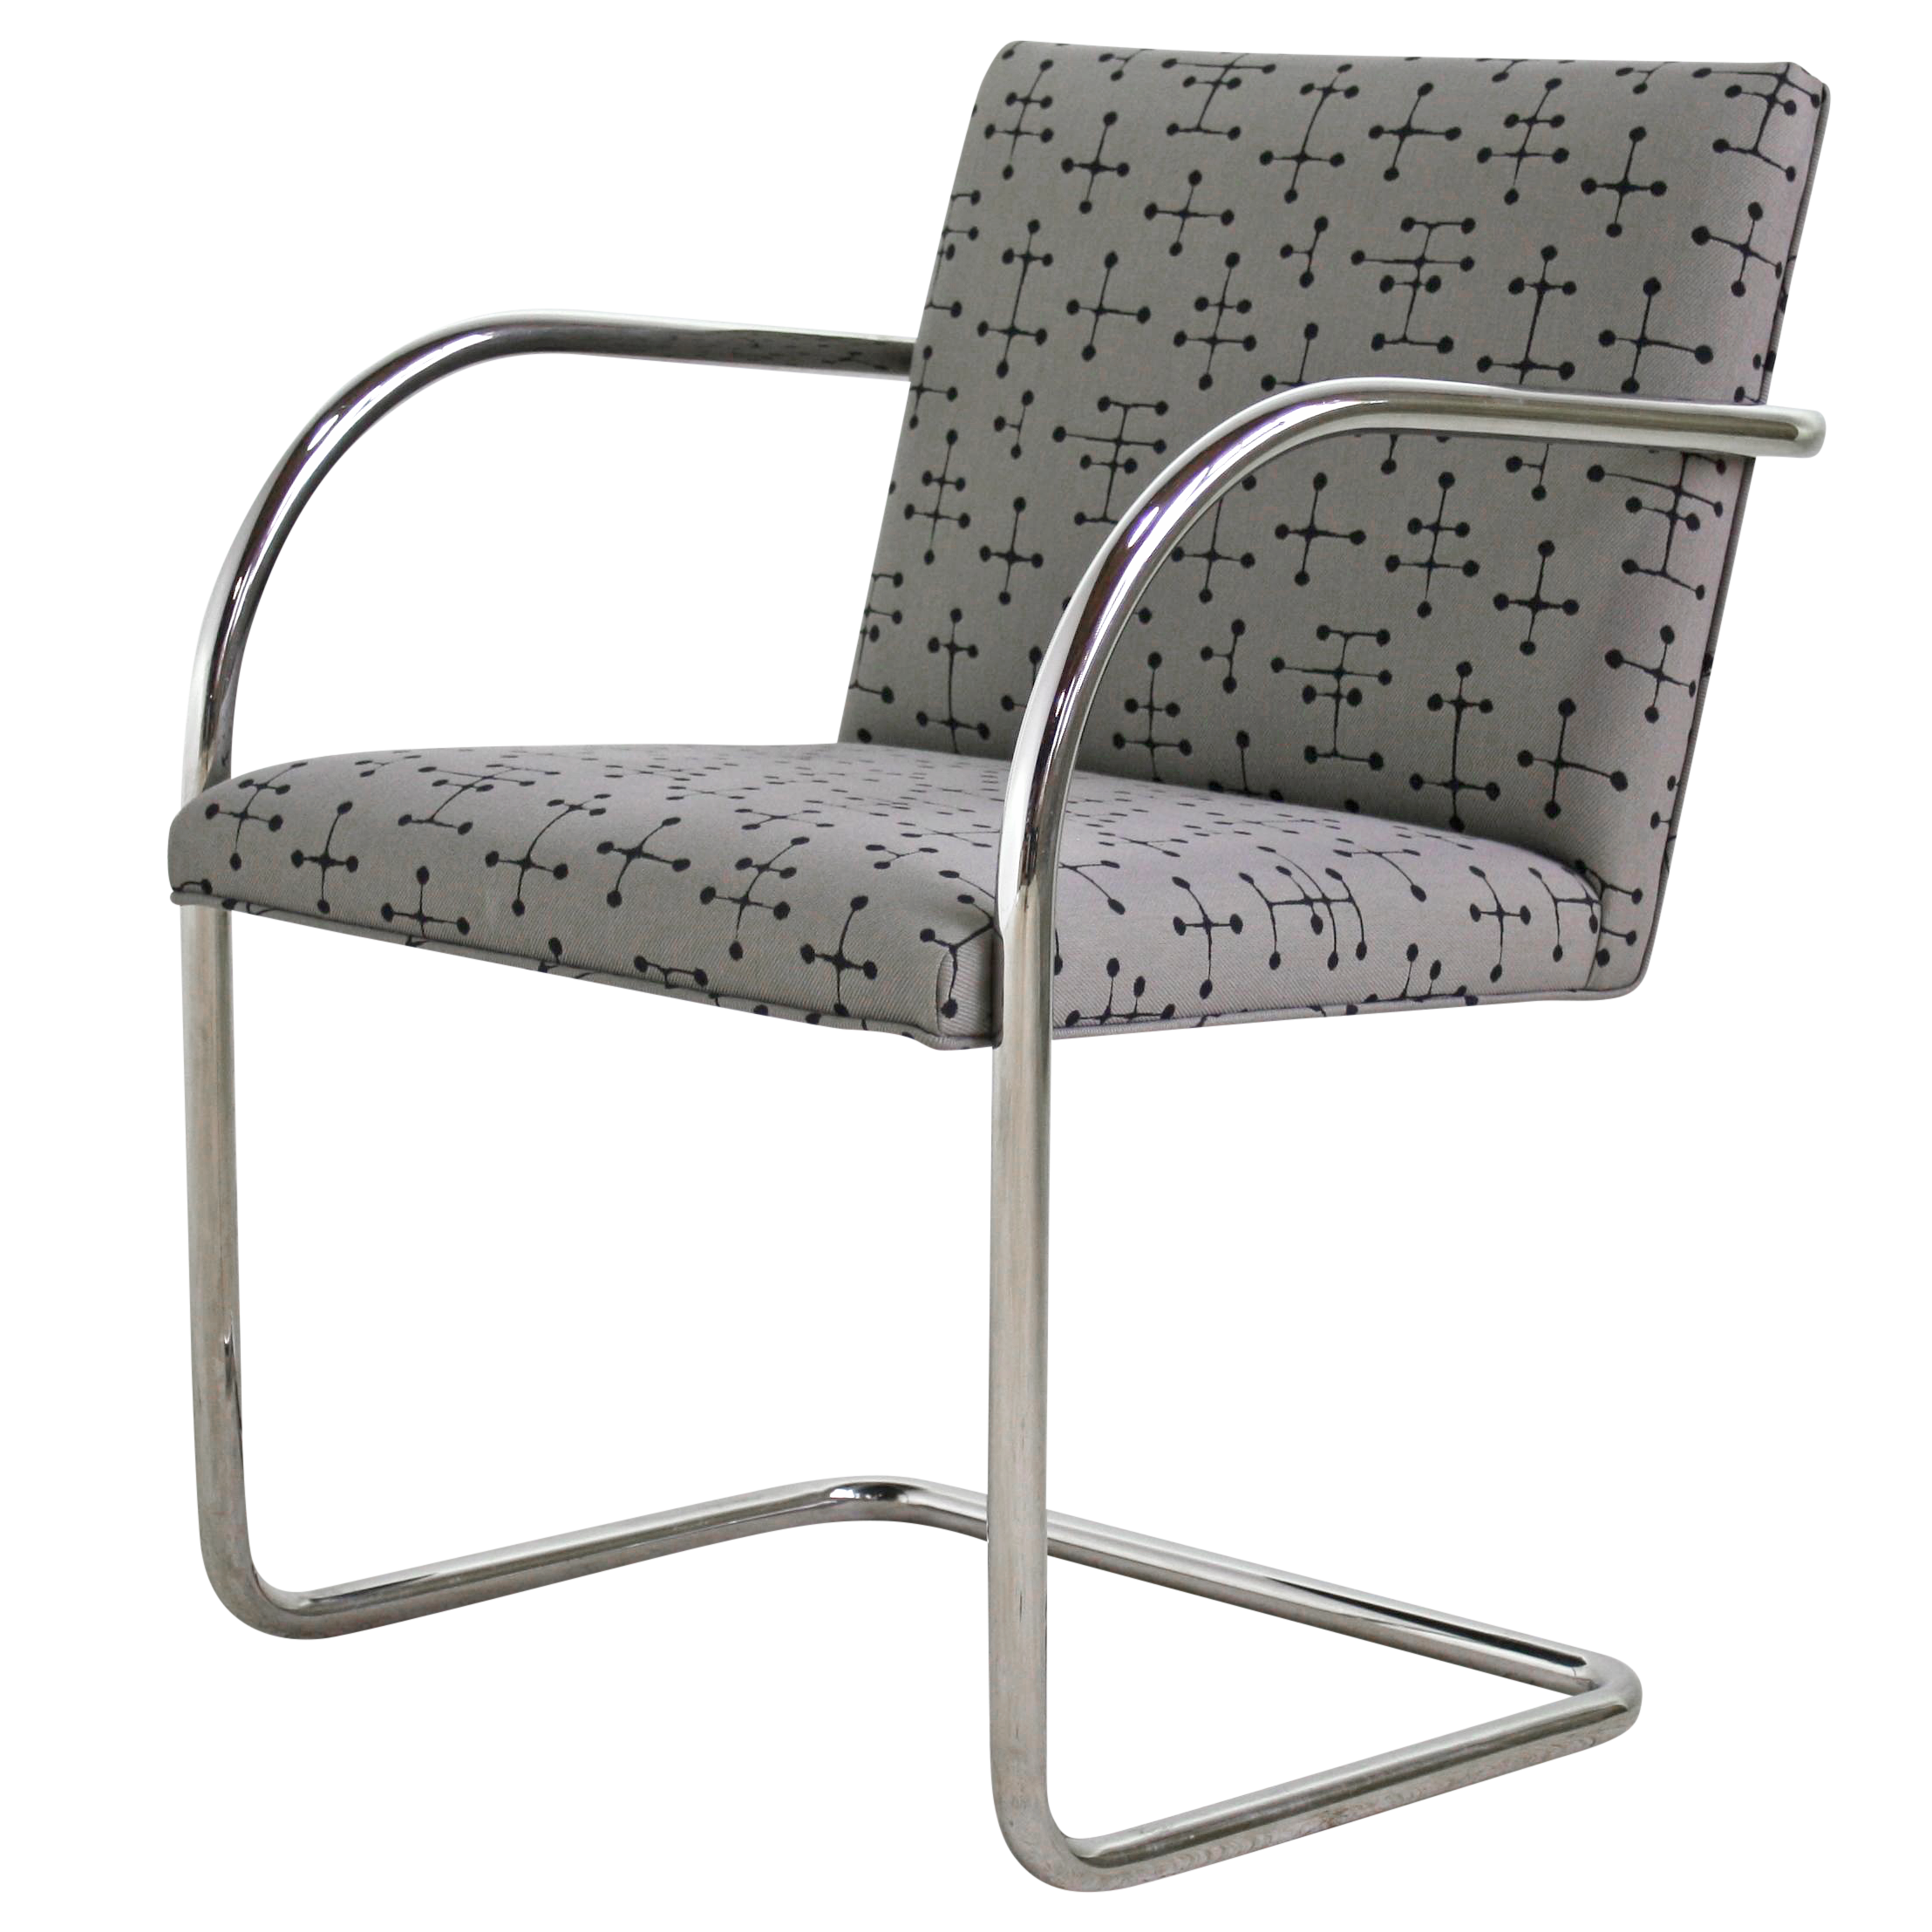 Mies van der rohe chair - Image Of Mies Van Der Rohe Brno Chair Eames Fabric 25 Avail